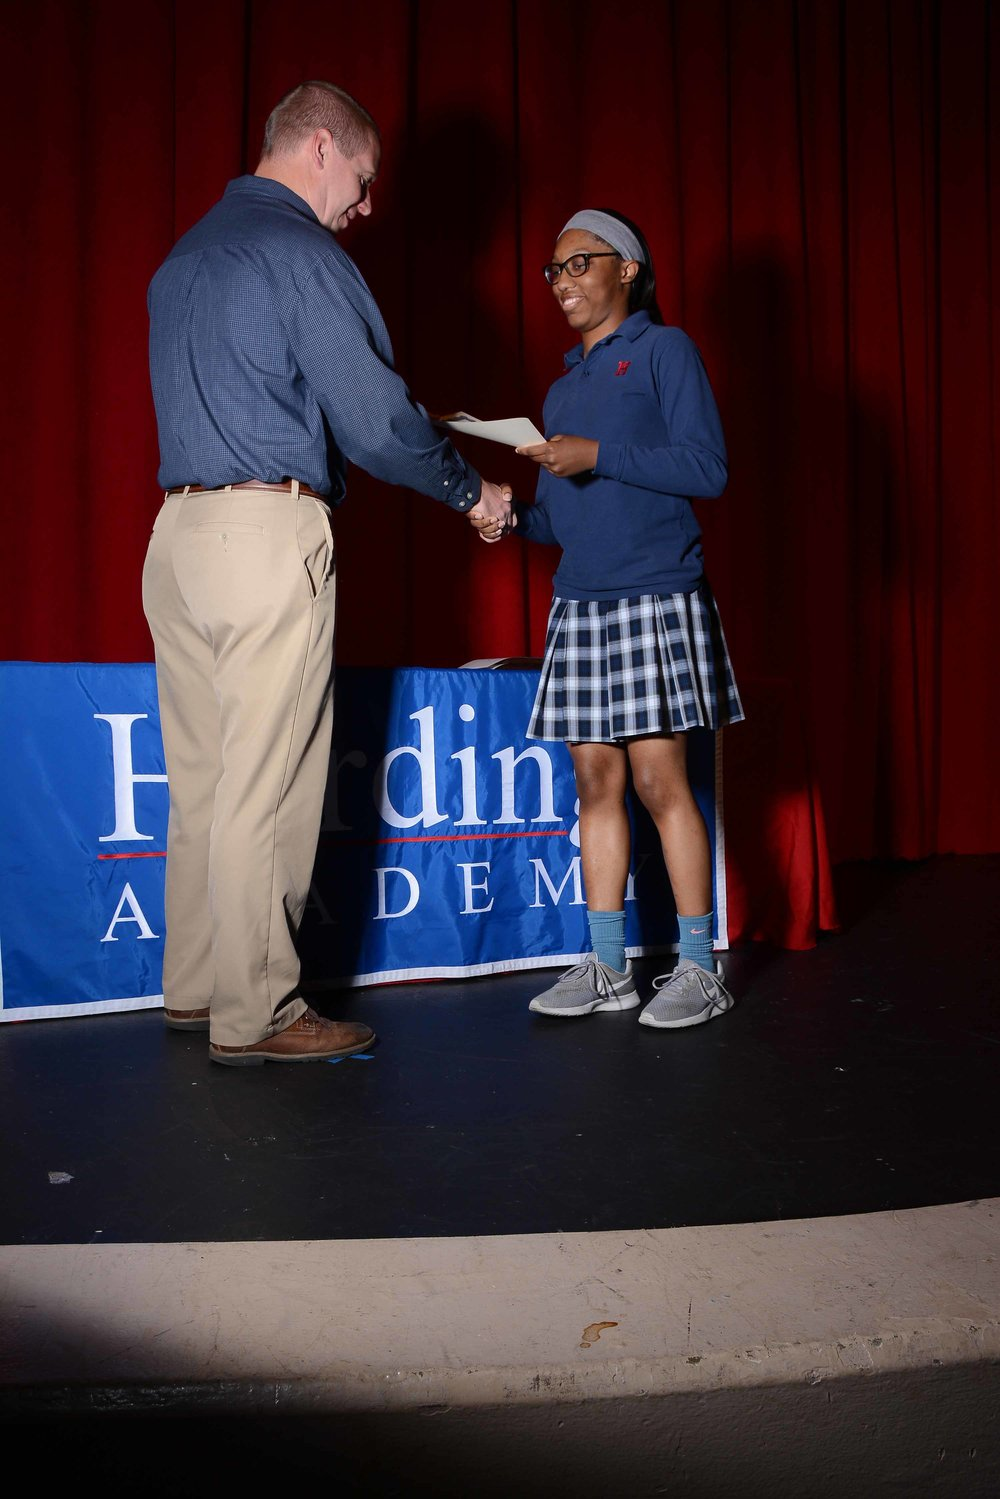 May2 AcademicAwards76.jpg